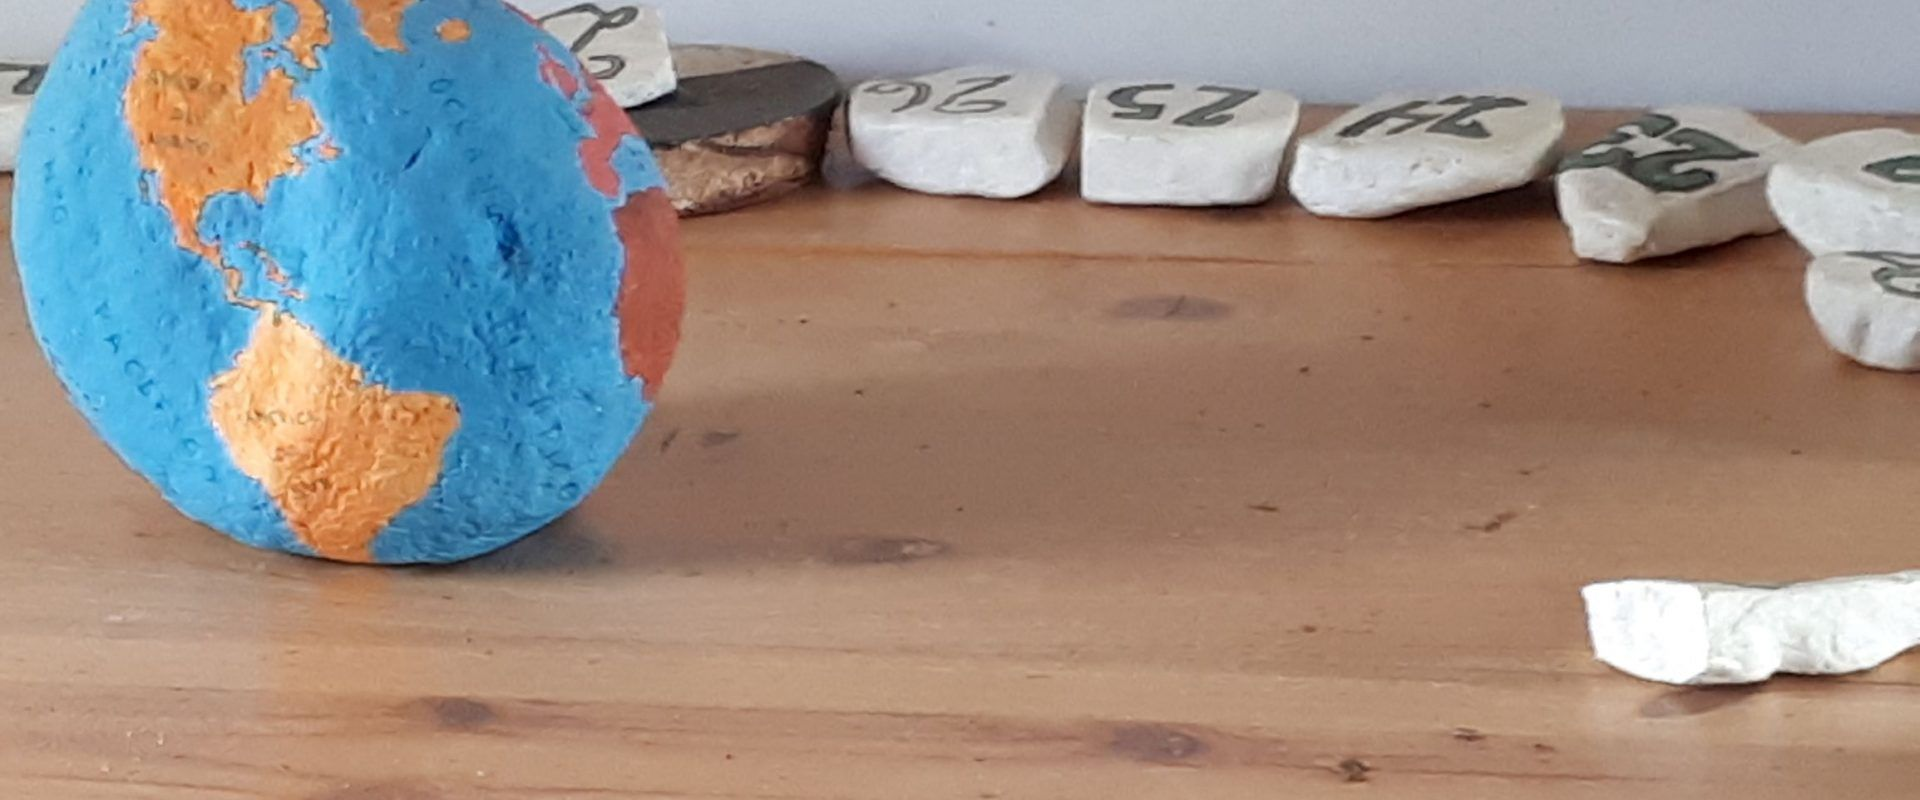 Painted stones with numbers, used as a calendar.